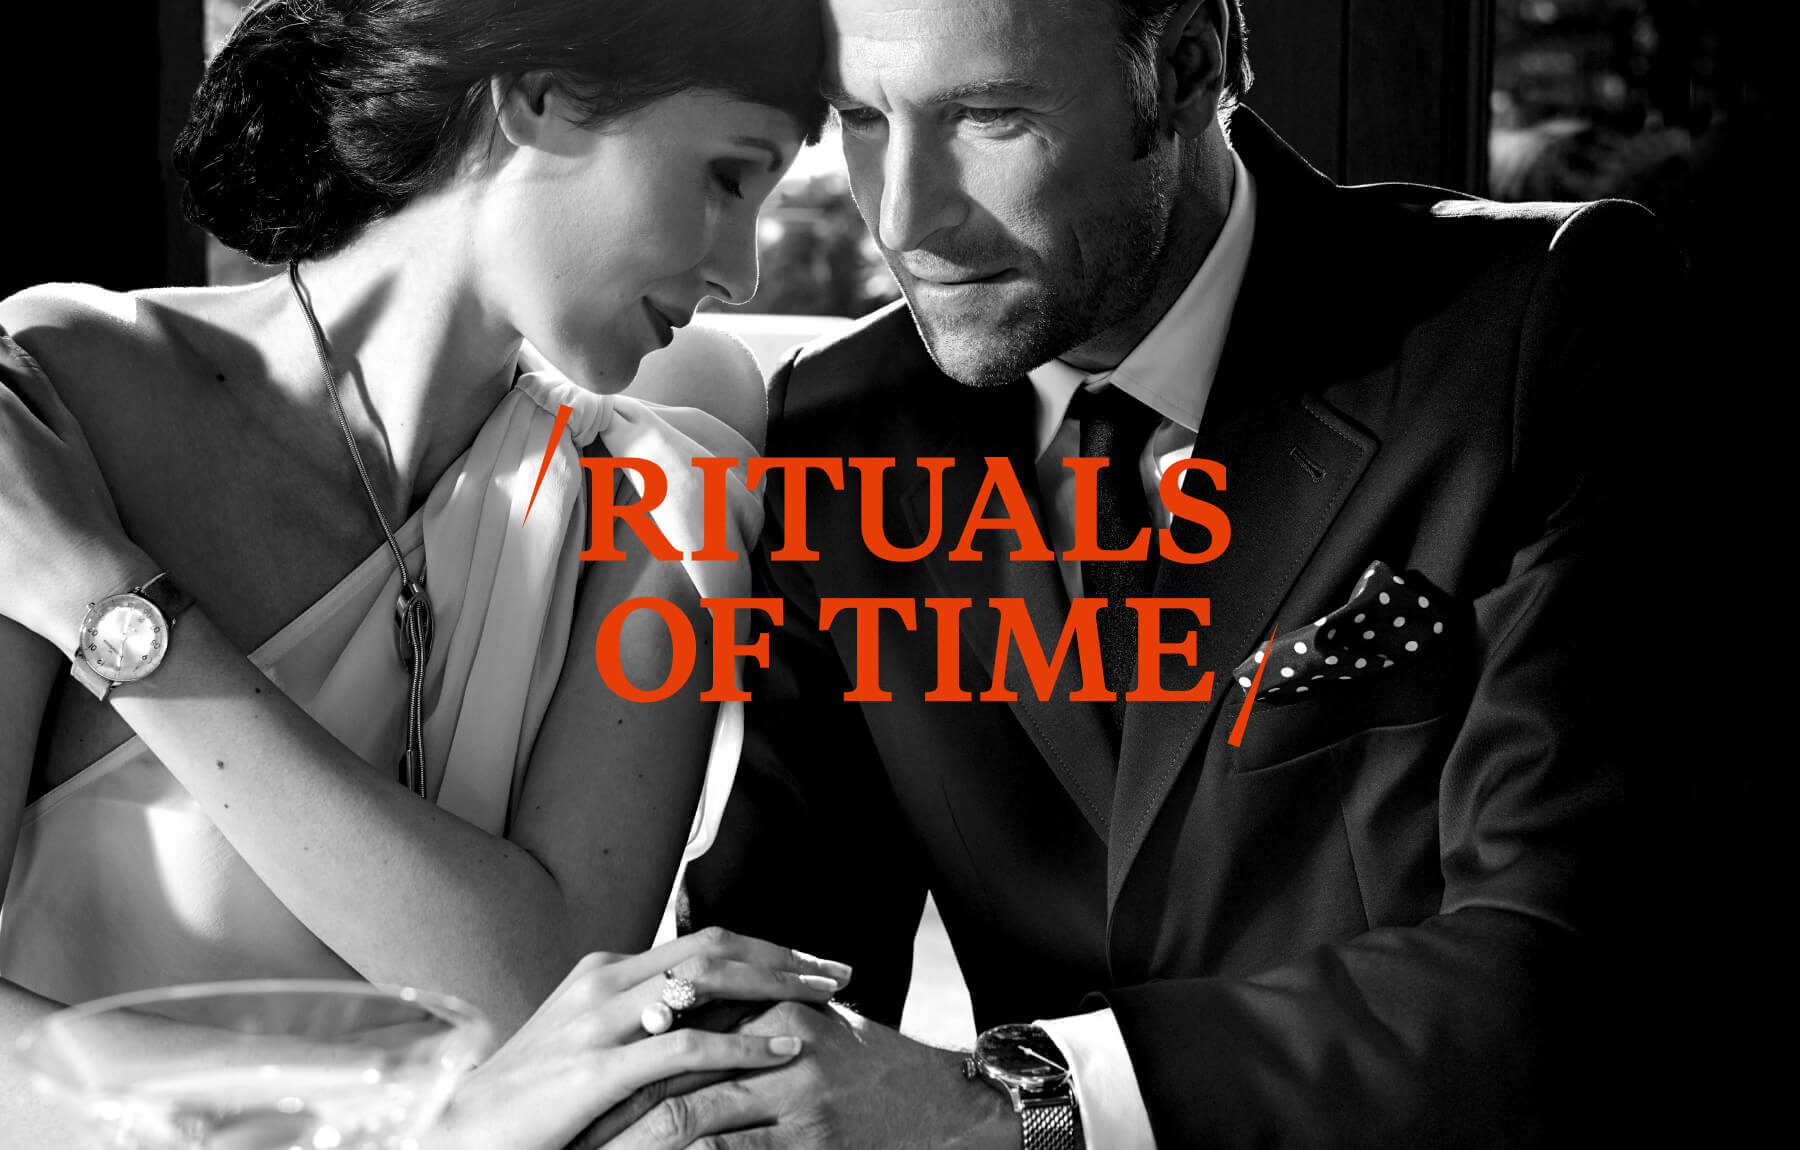 cyclos meistersinger Rituals Of Time Image Kampagne